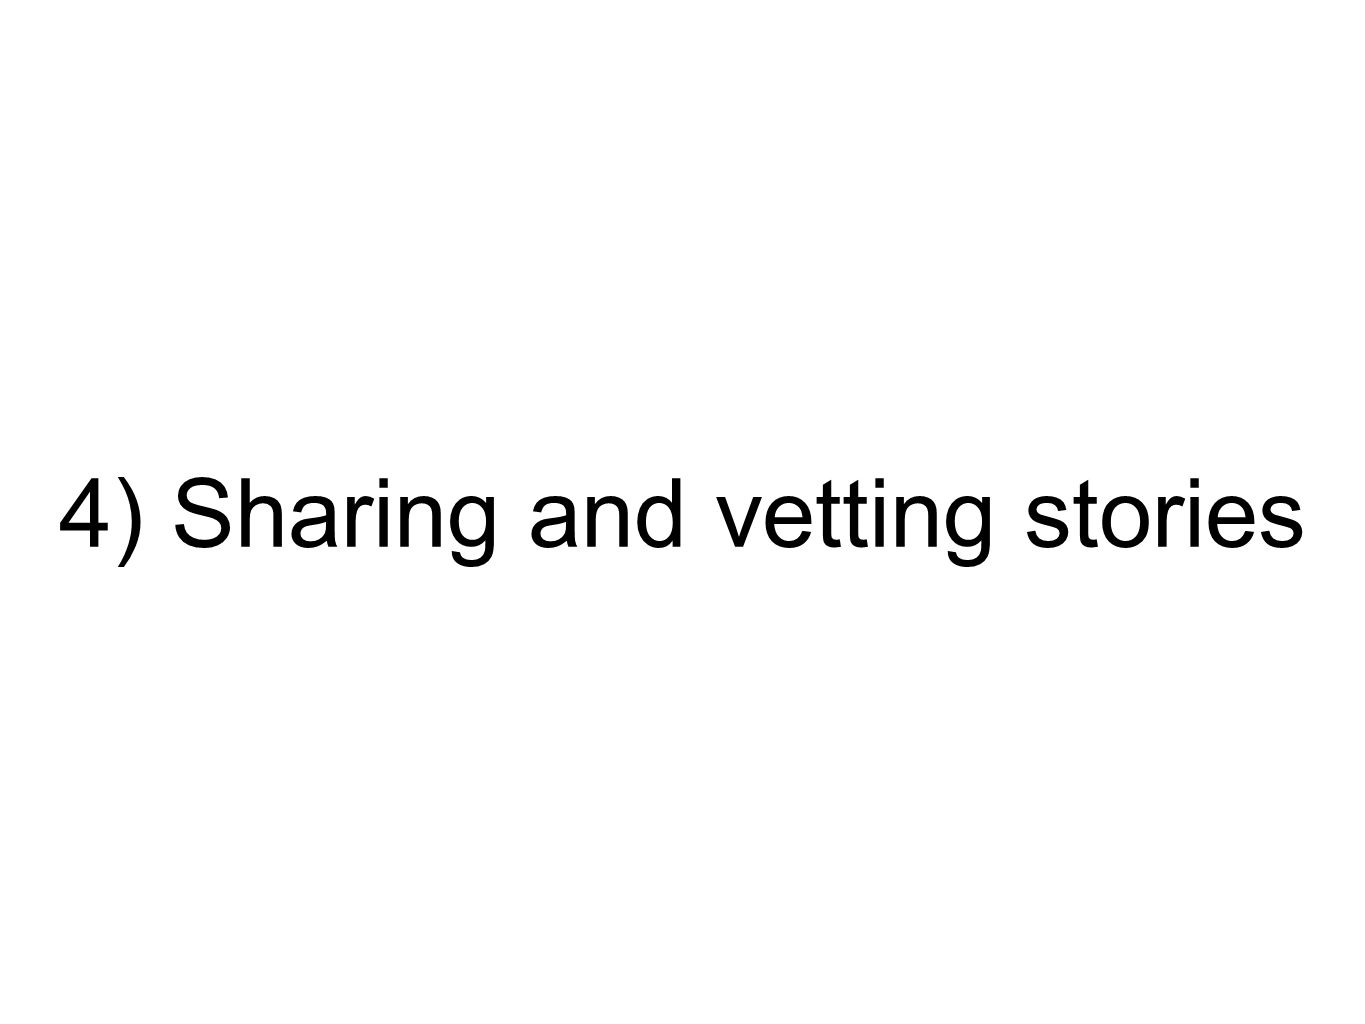 4) Sharing and vetting stories